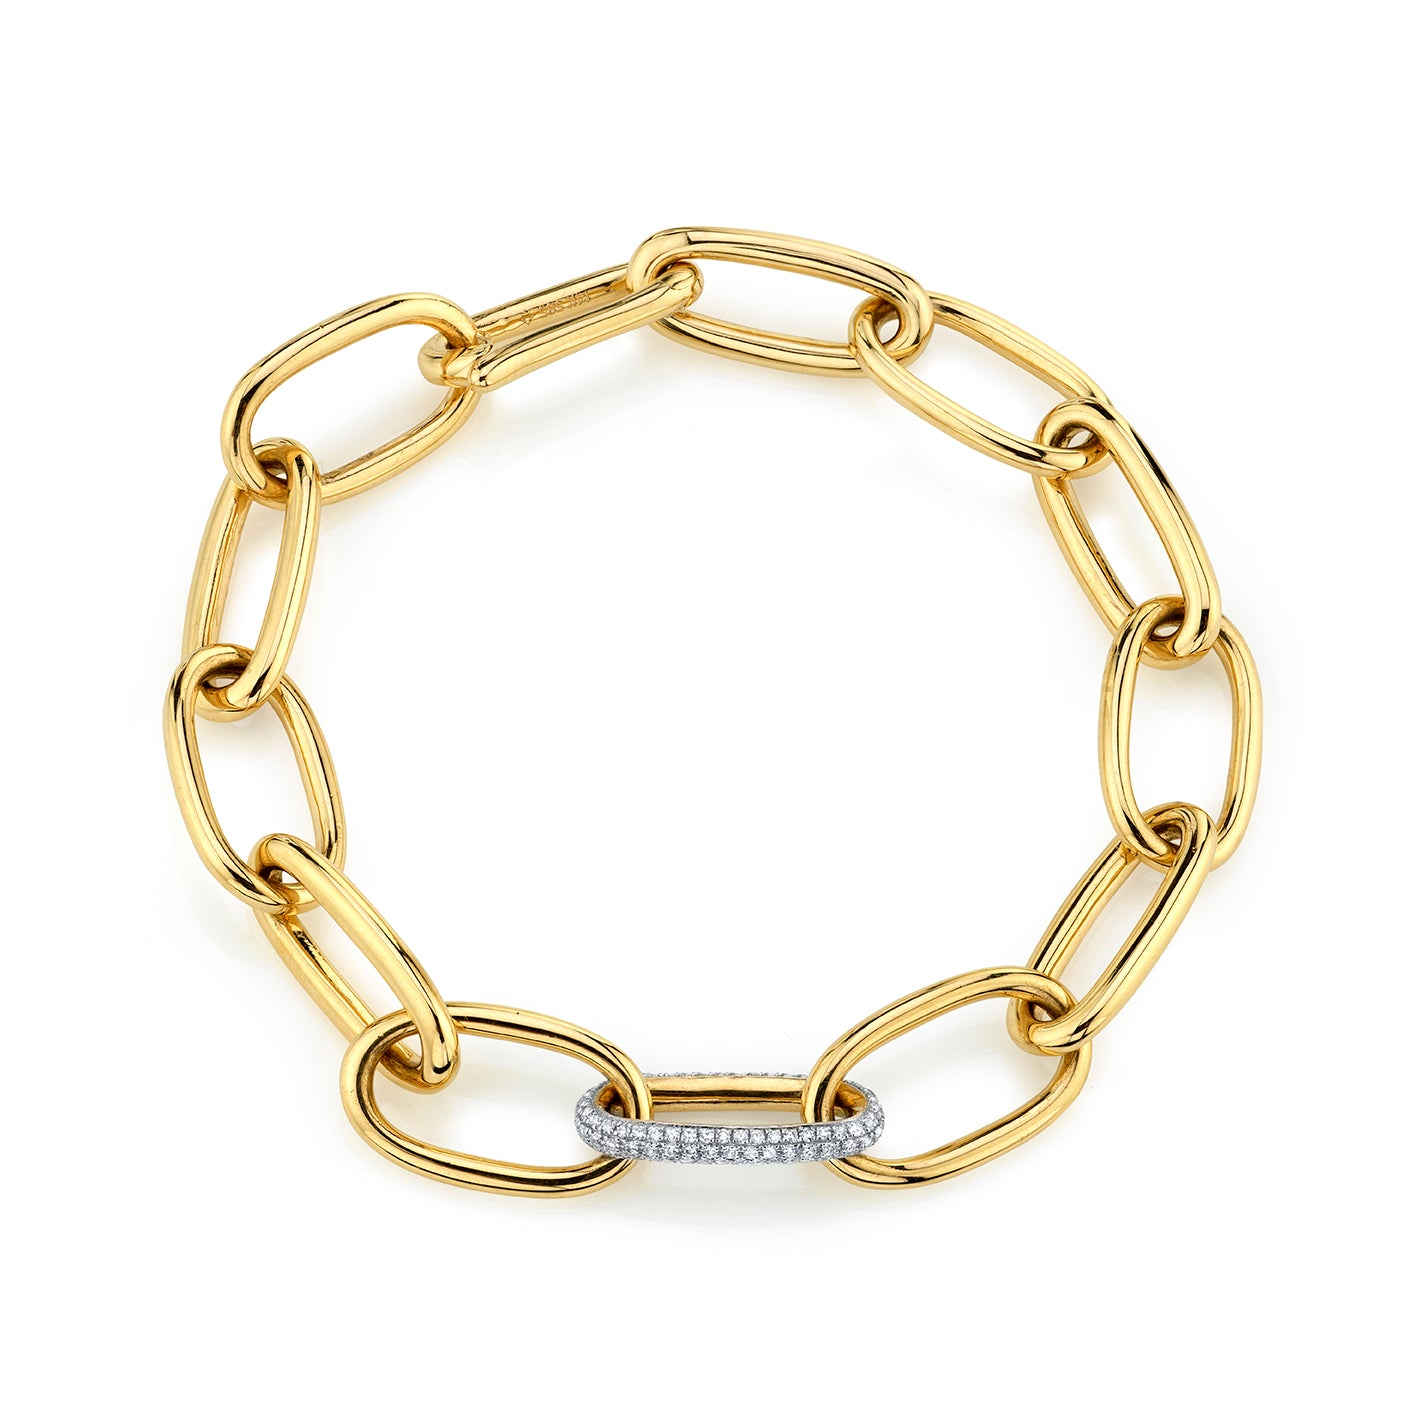 Long Rectangular Chain Bracelet with Pavé Invisible Clasp